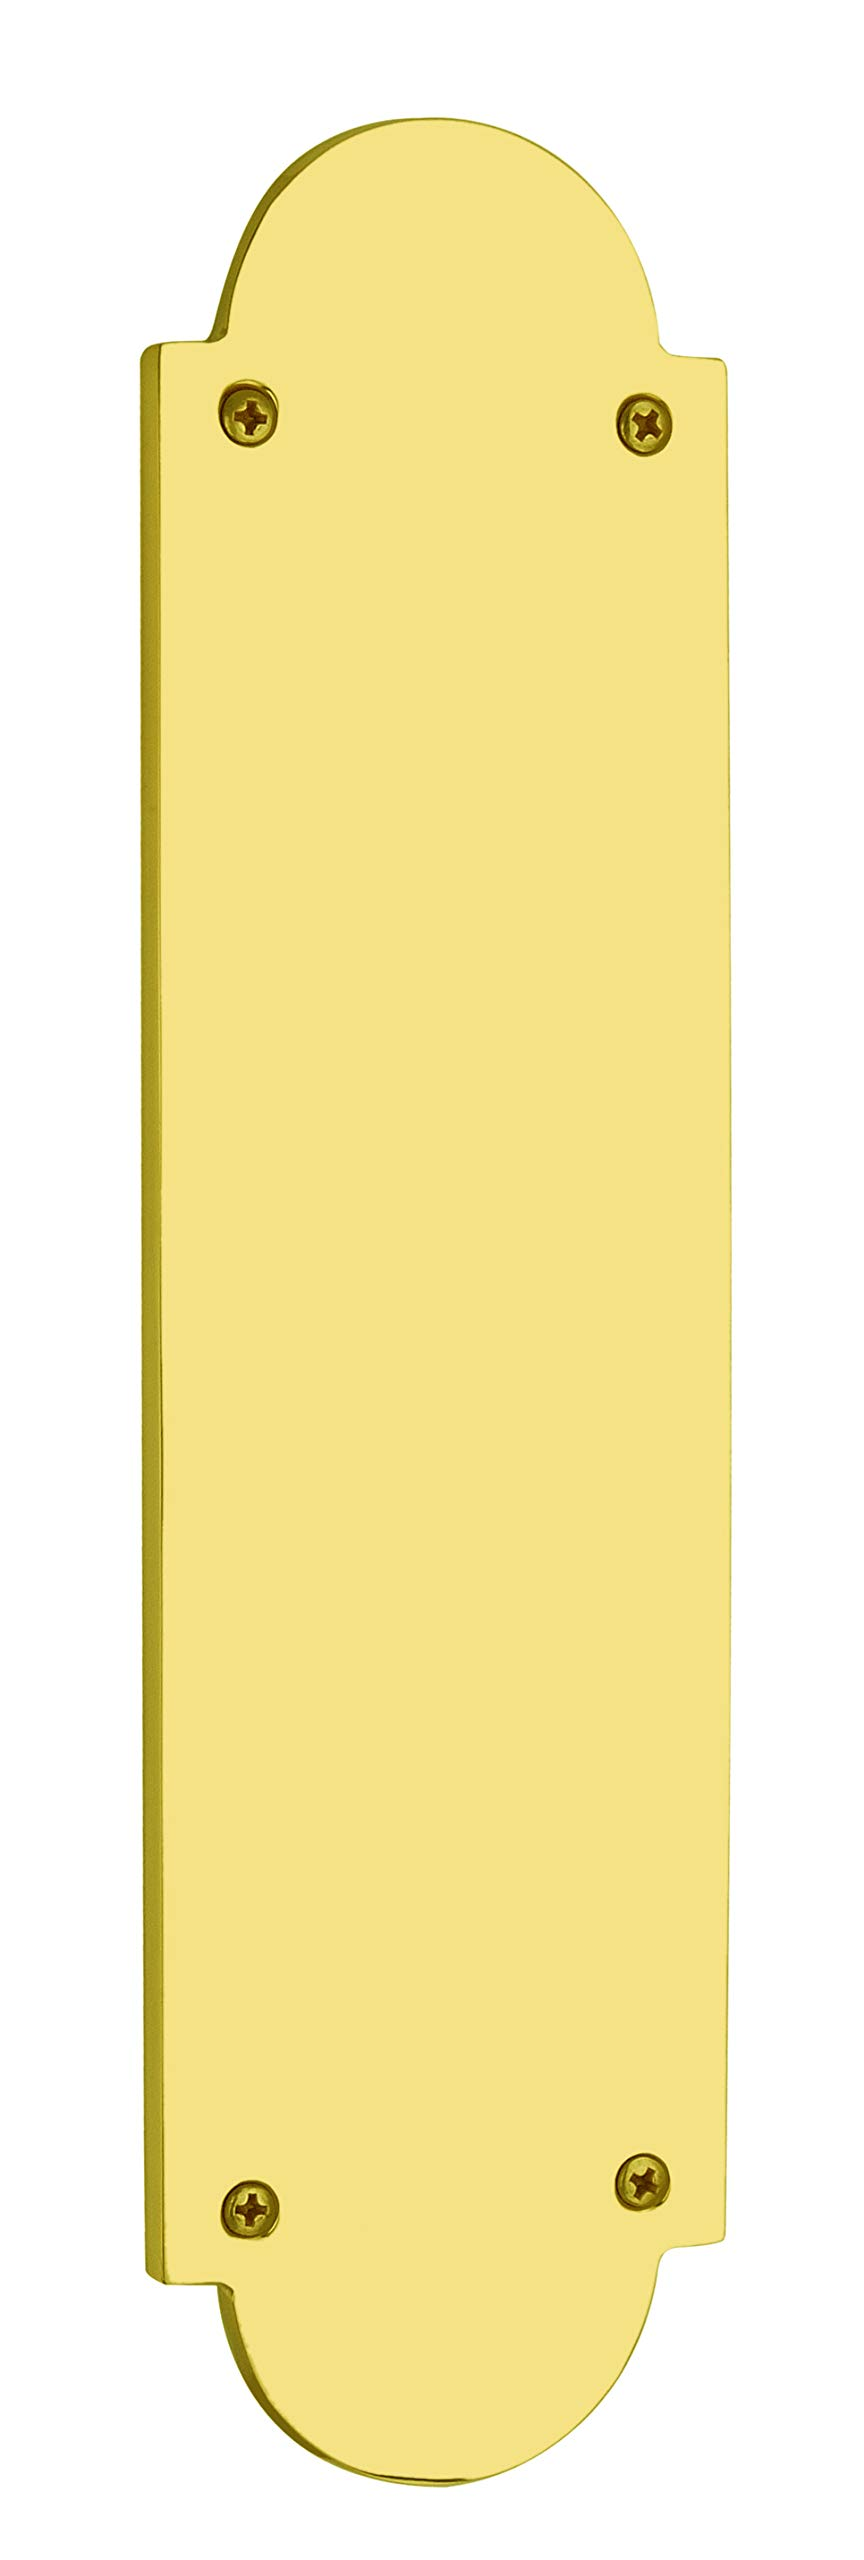 Knoxx Hardware Traditional Push Plate -3'' x 12'', Polished Brass